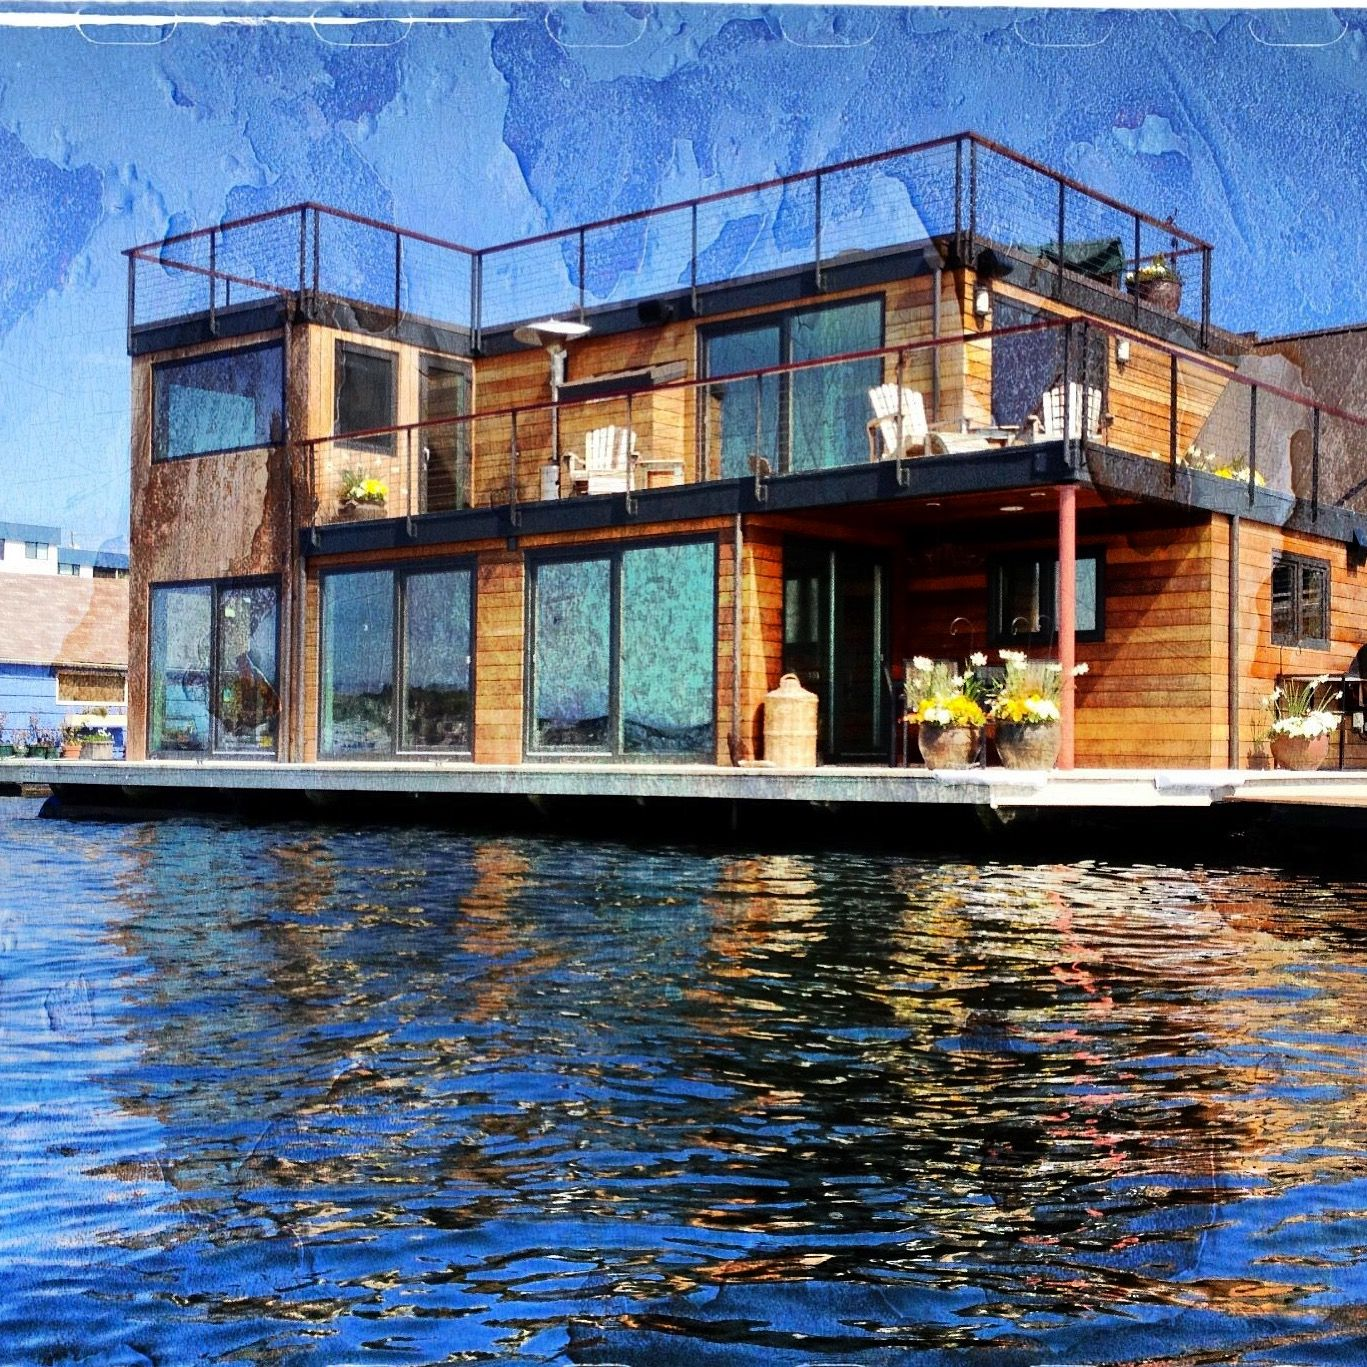 Seattle Floating Homes With Images Floating House Seattle Homes Waterfront Homes